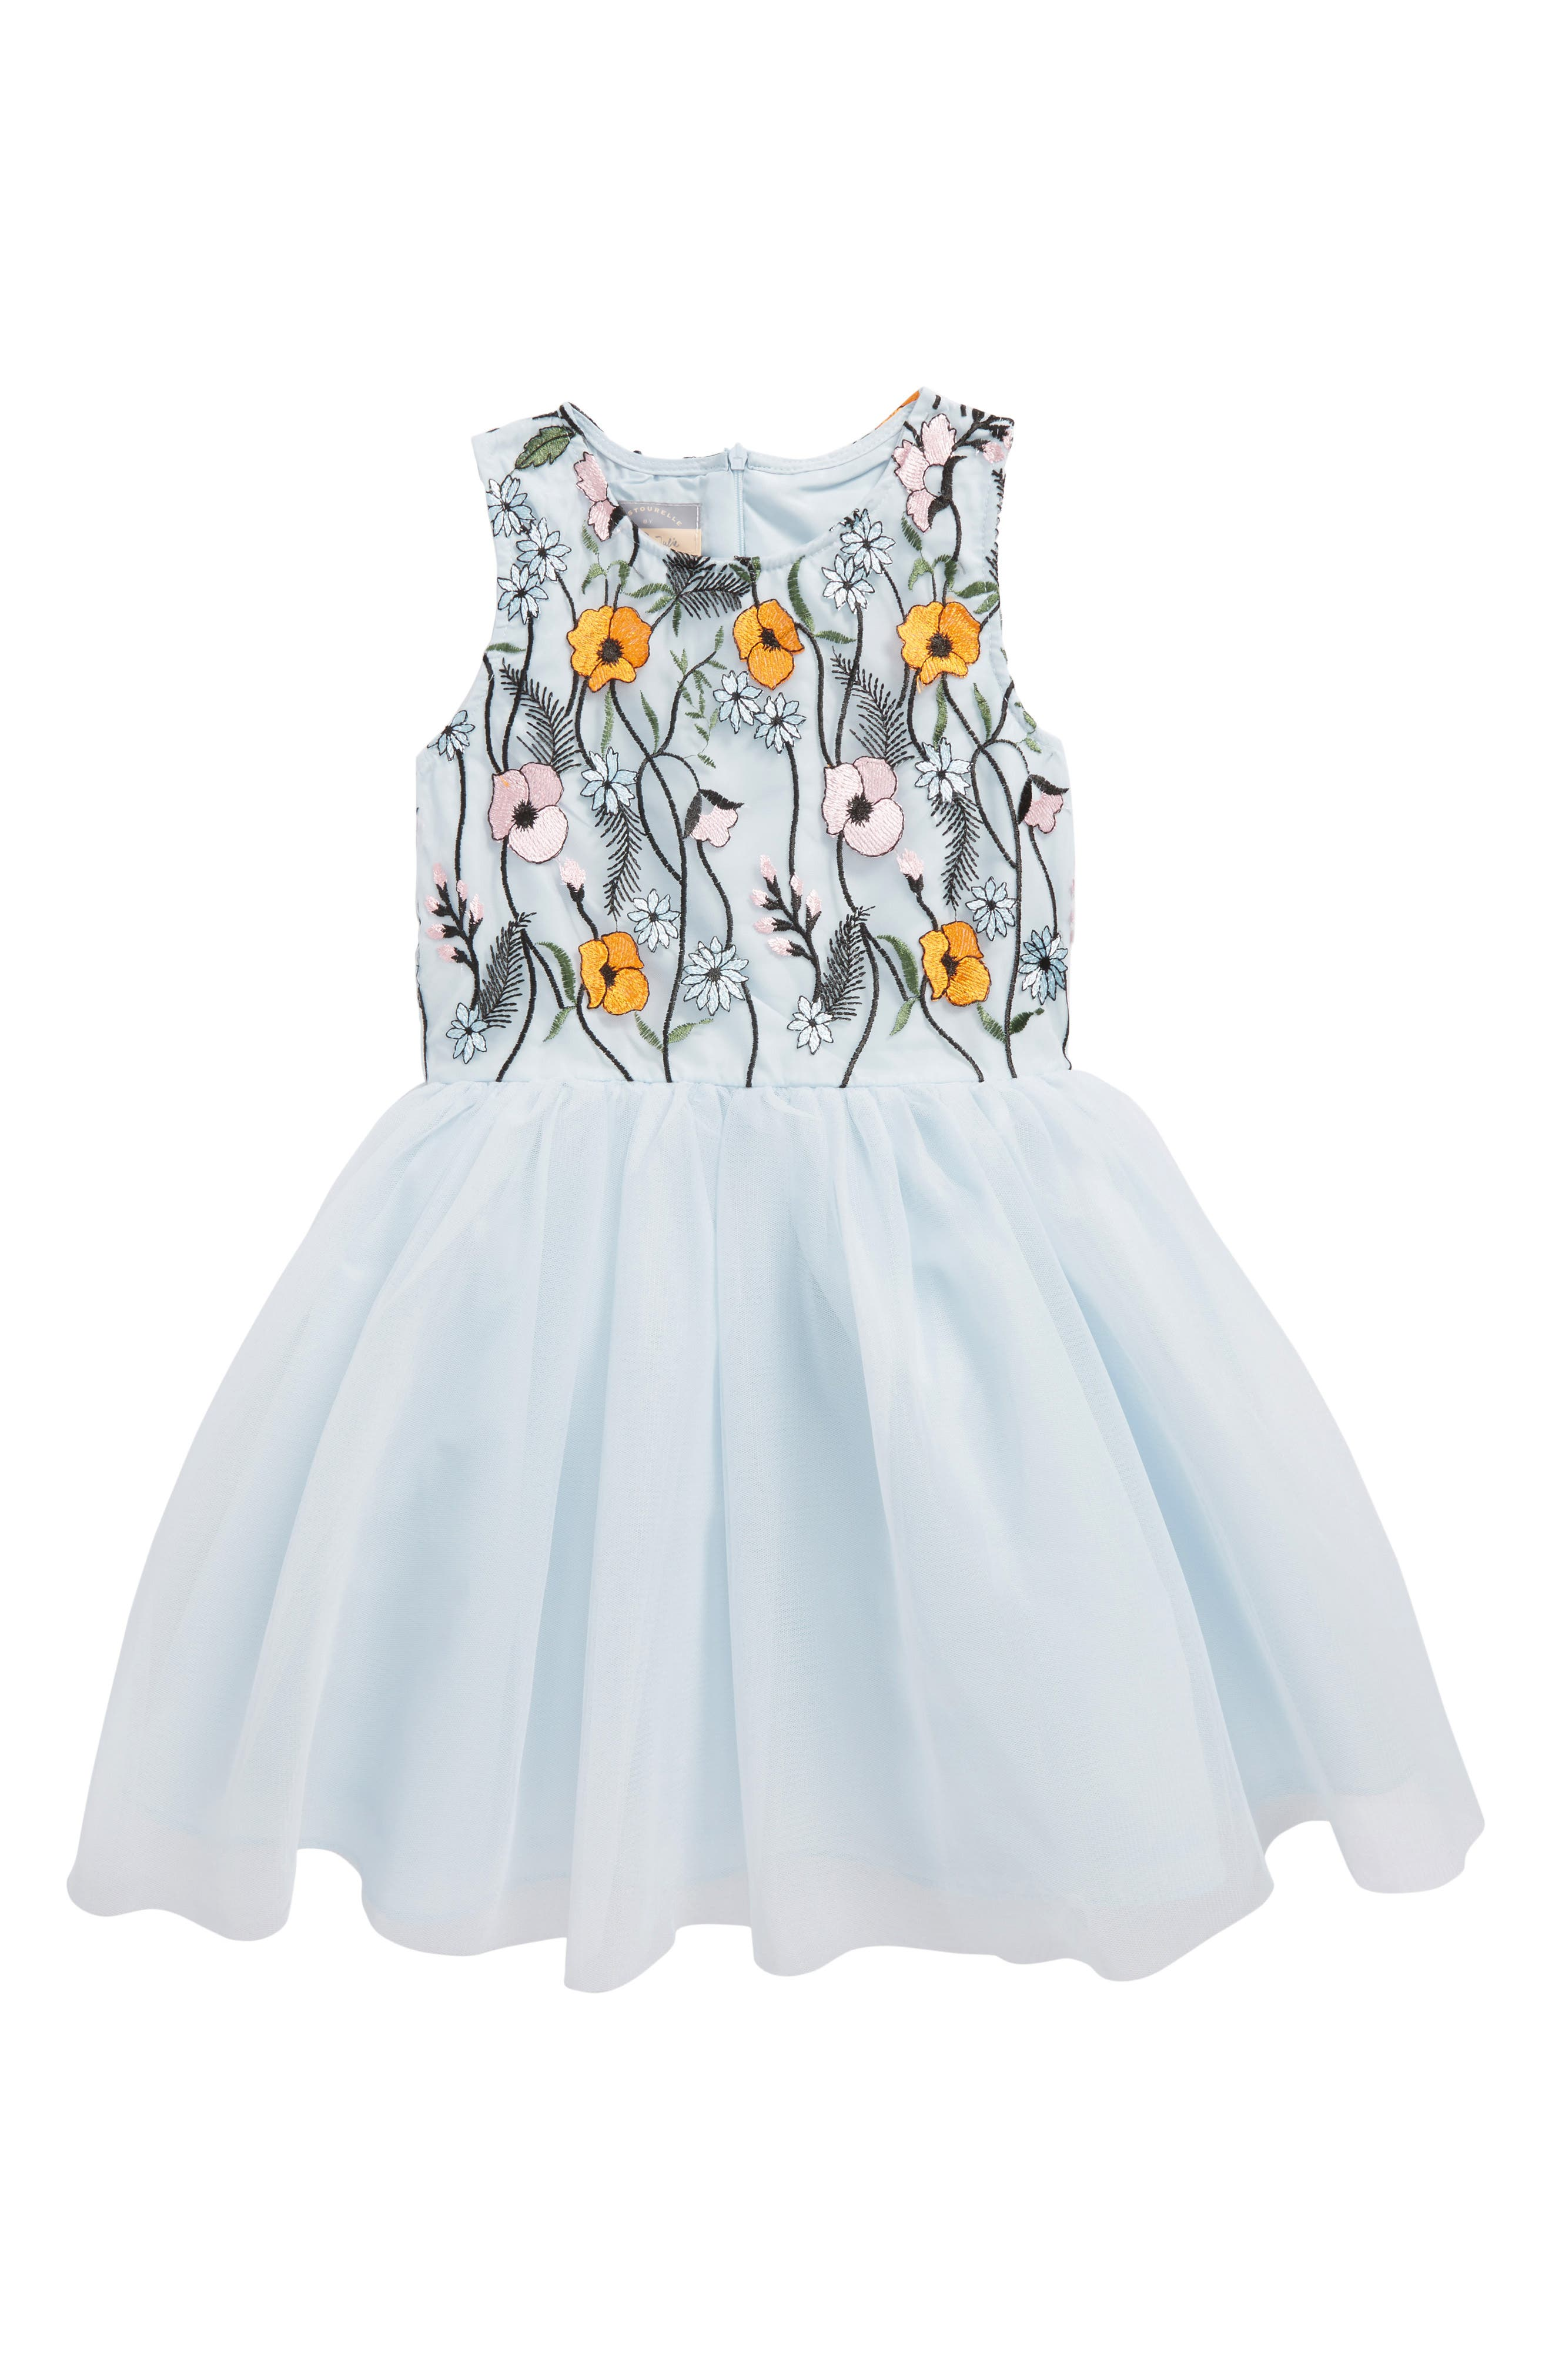 Floral Embroidered Tulle Dress,                         Main,                         color, Multi